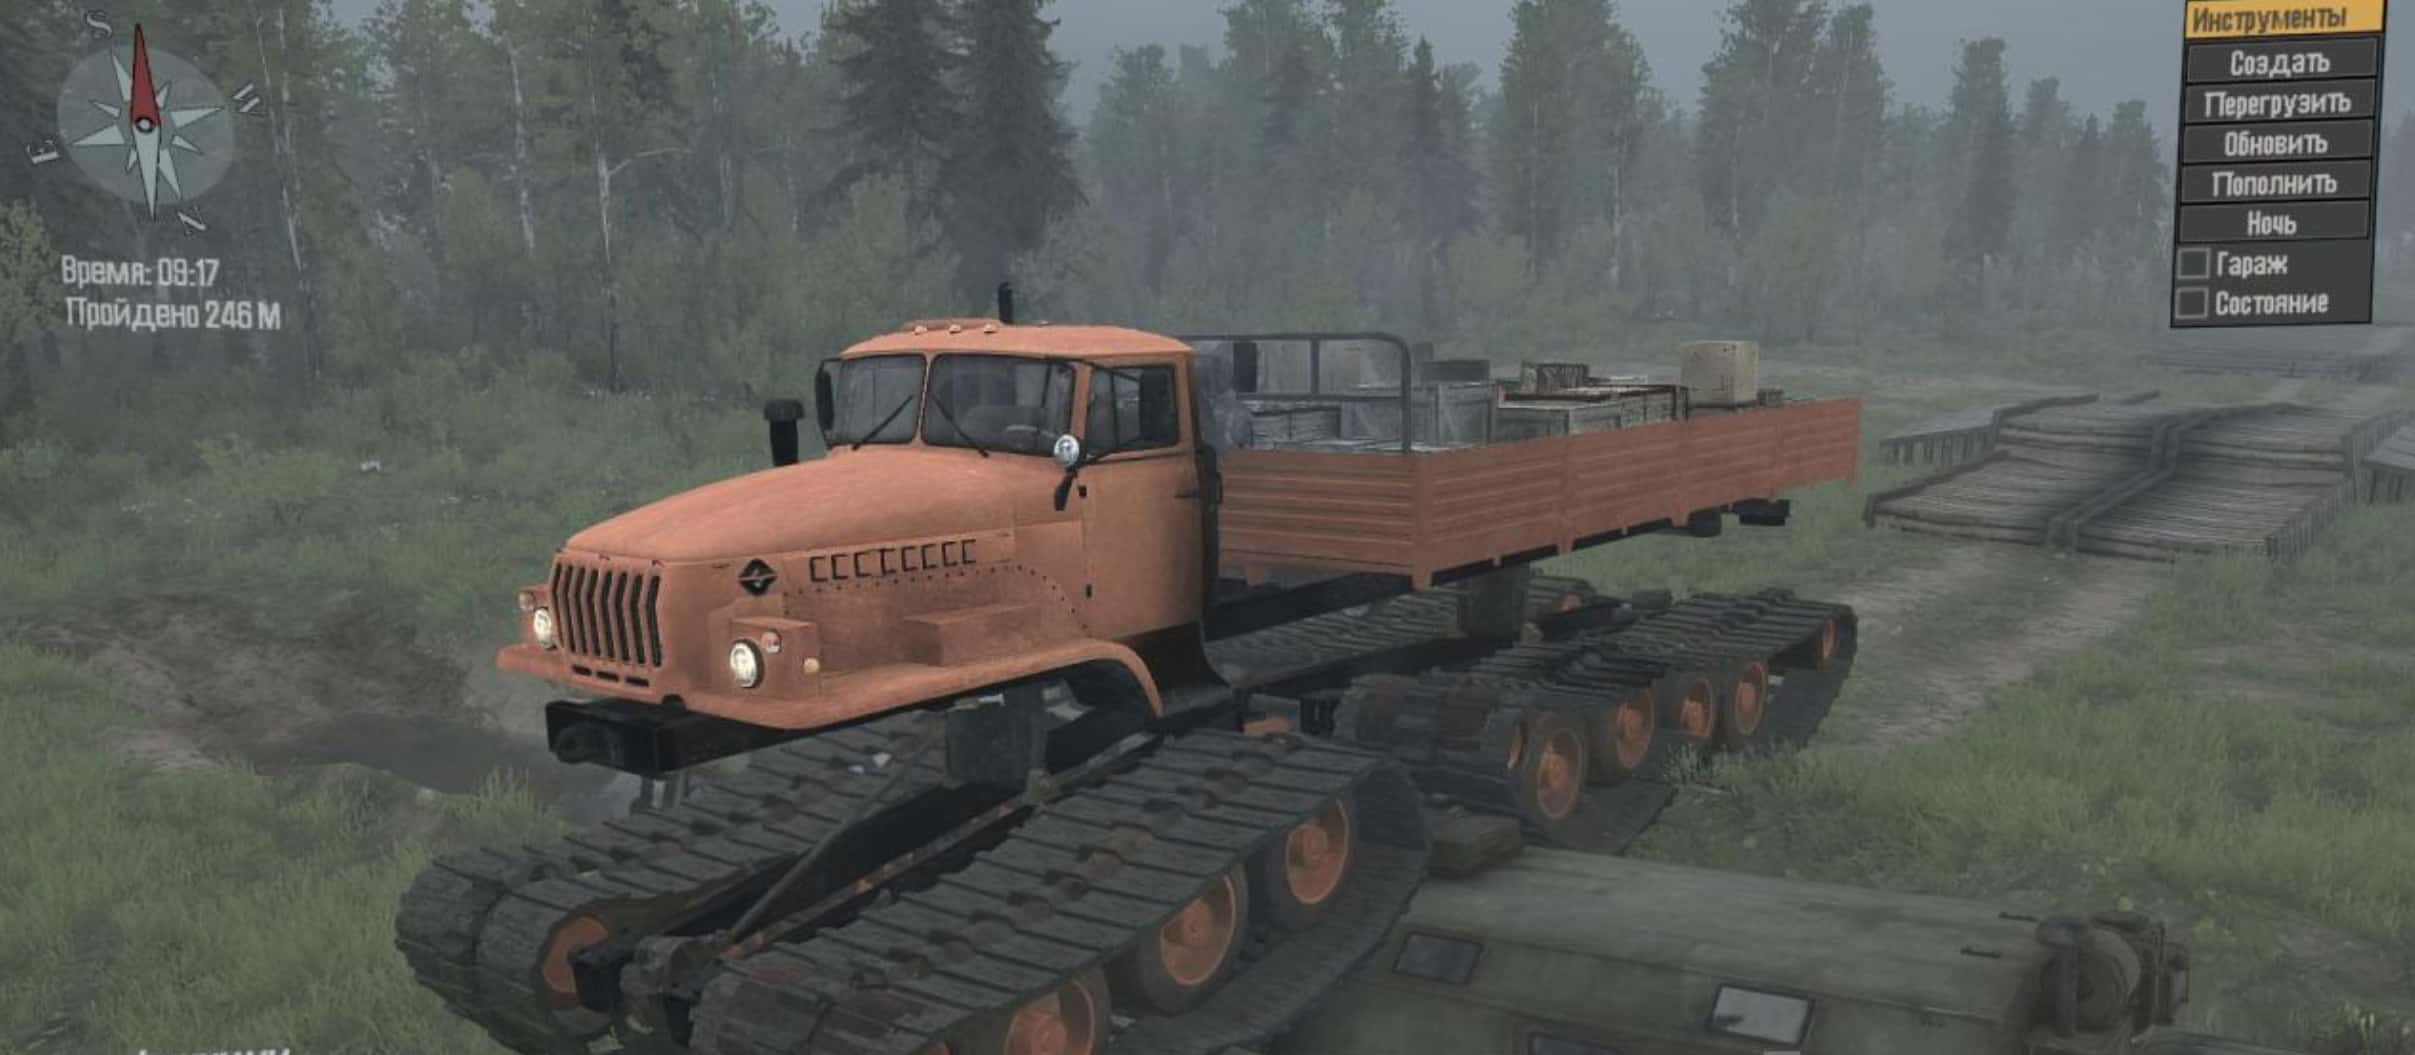 how to get mods to work on spintires